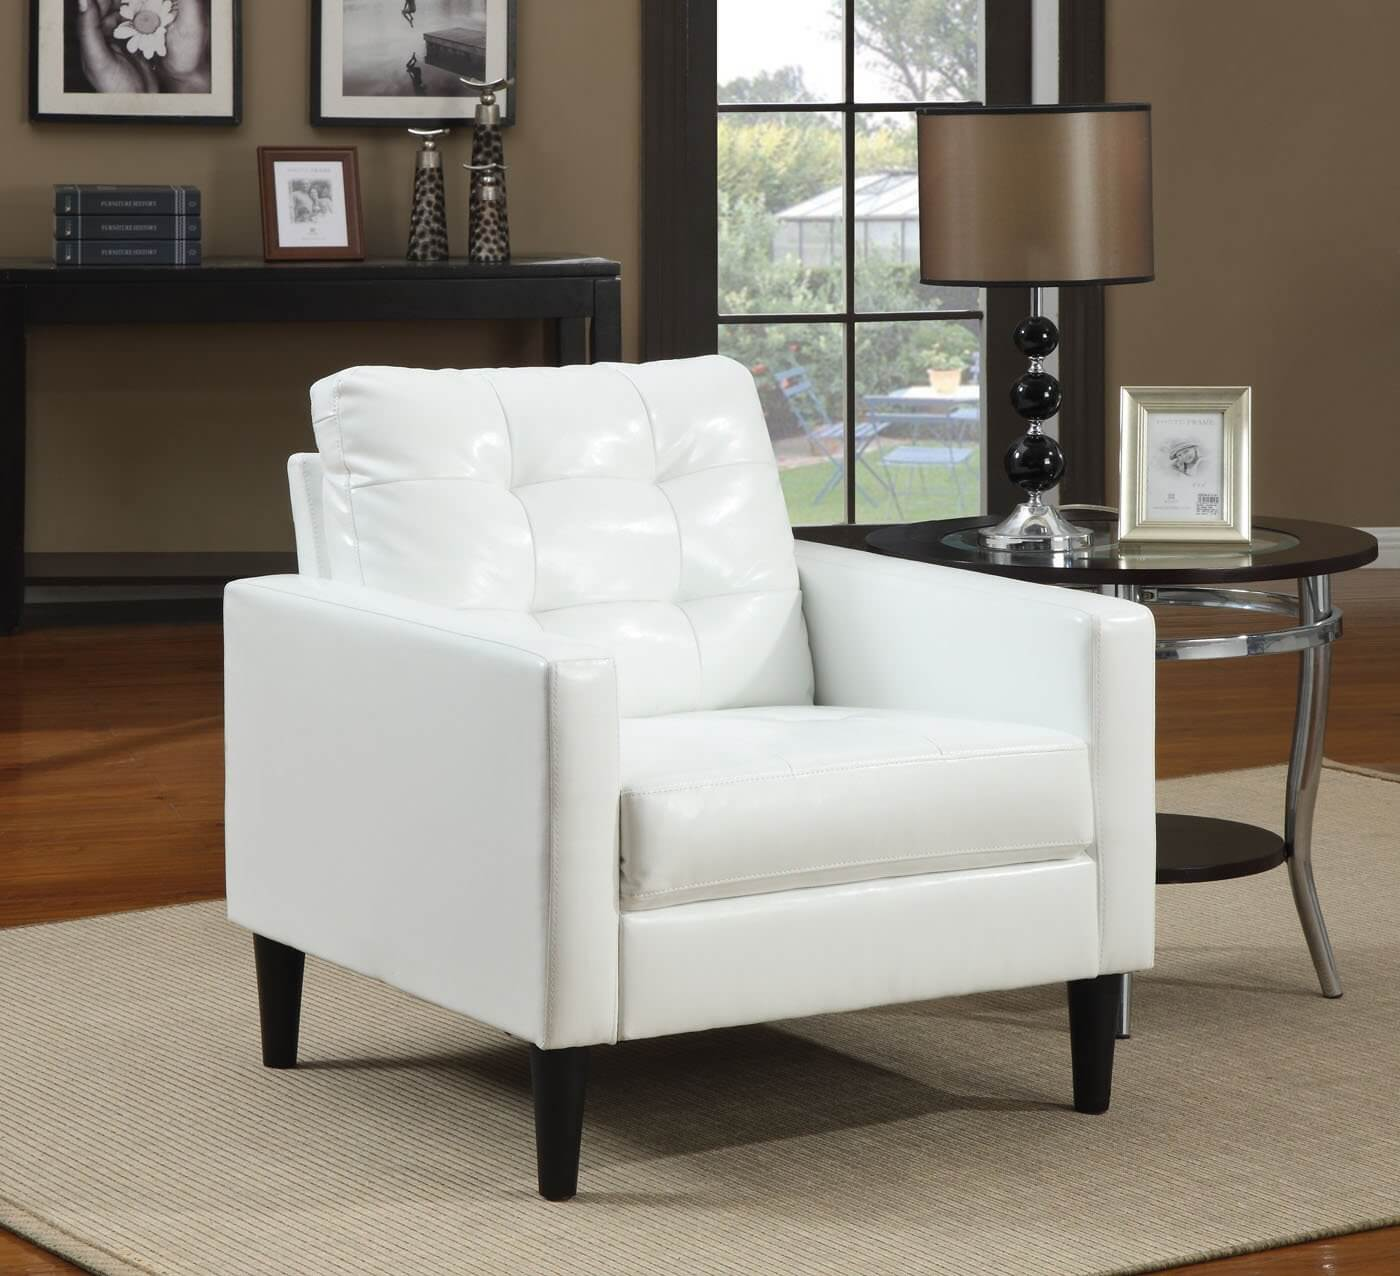 37 White Modern Accent Chairs for the Living Room Balin collection accent chair from ACME features stuffed cushion back in  polyurethane faux white leather . Accent Chair For Living Room. Home Design Ideas